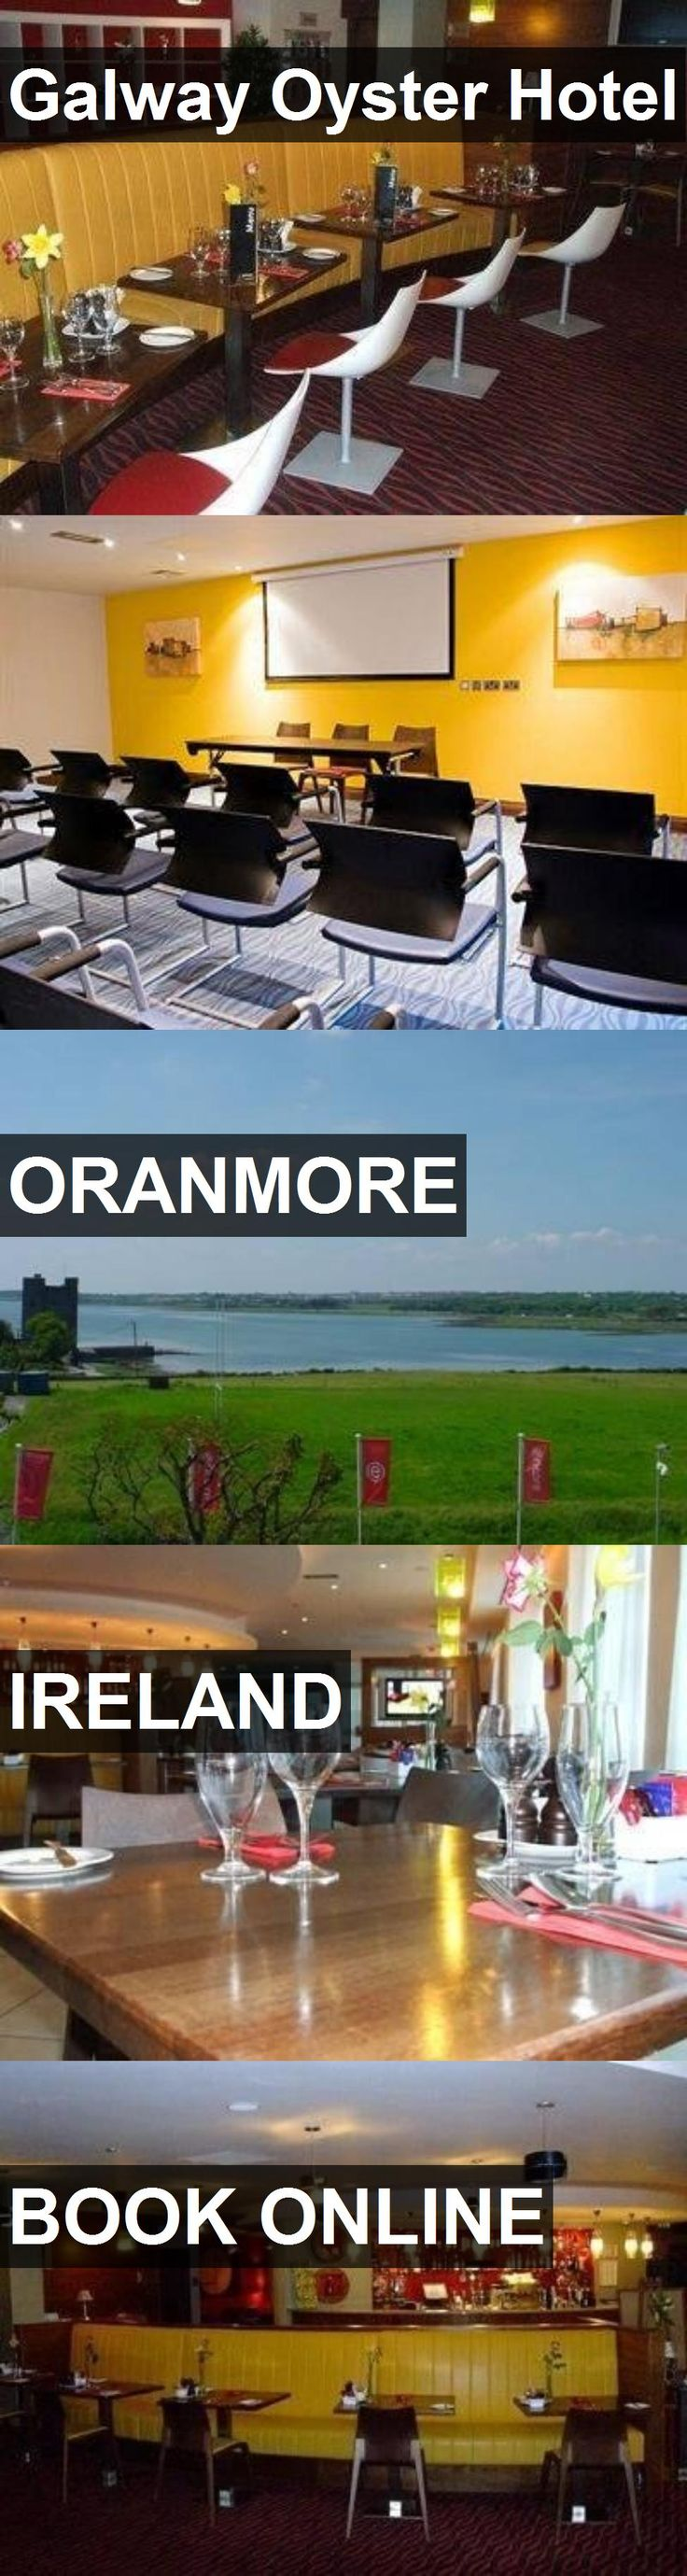 Hotel Galway Oyster Hotel in Oranmore, Ireland. For more information, photos, reviews and best prices please follow the link. #Ireland #Oranmore #GalwayOysterHotel #hotel #travel #vacation